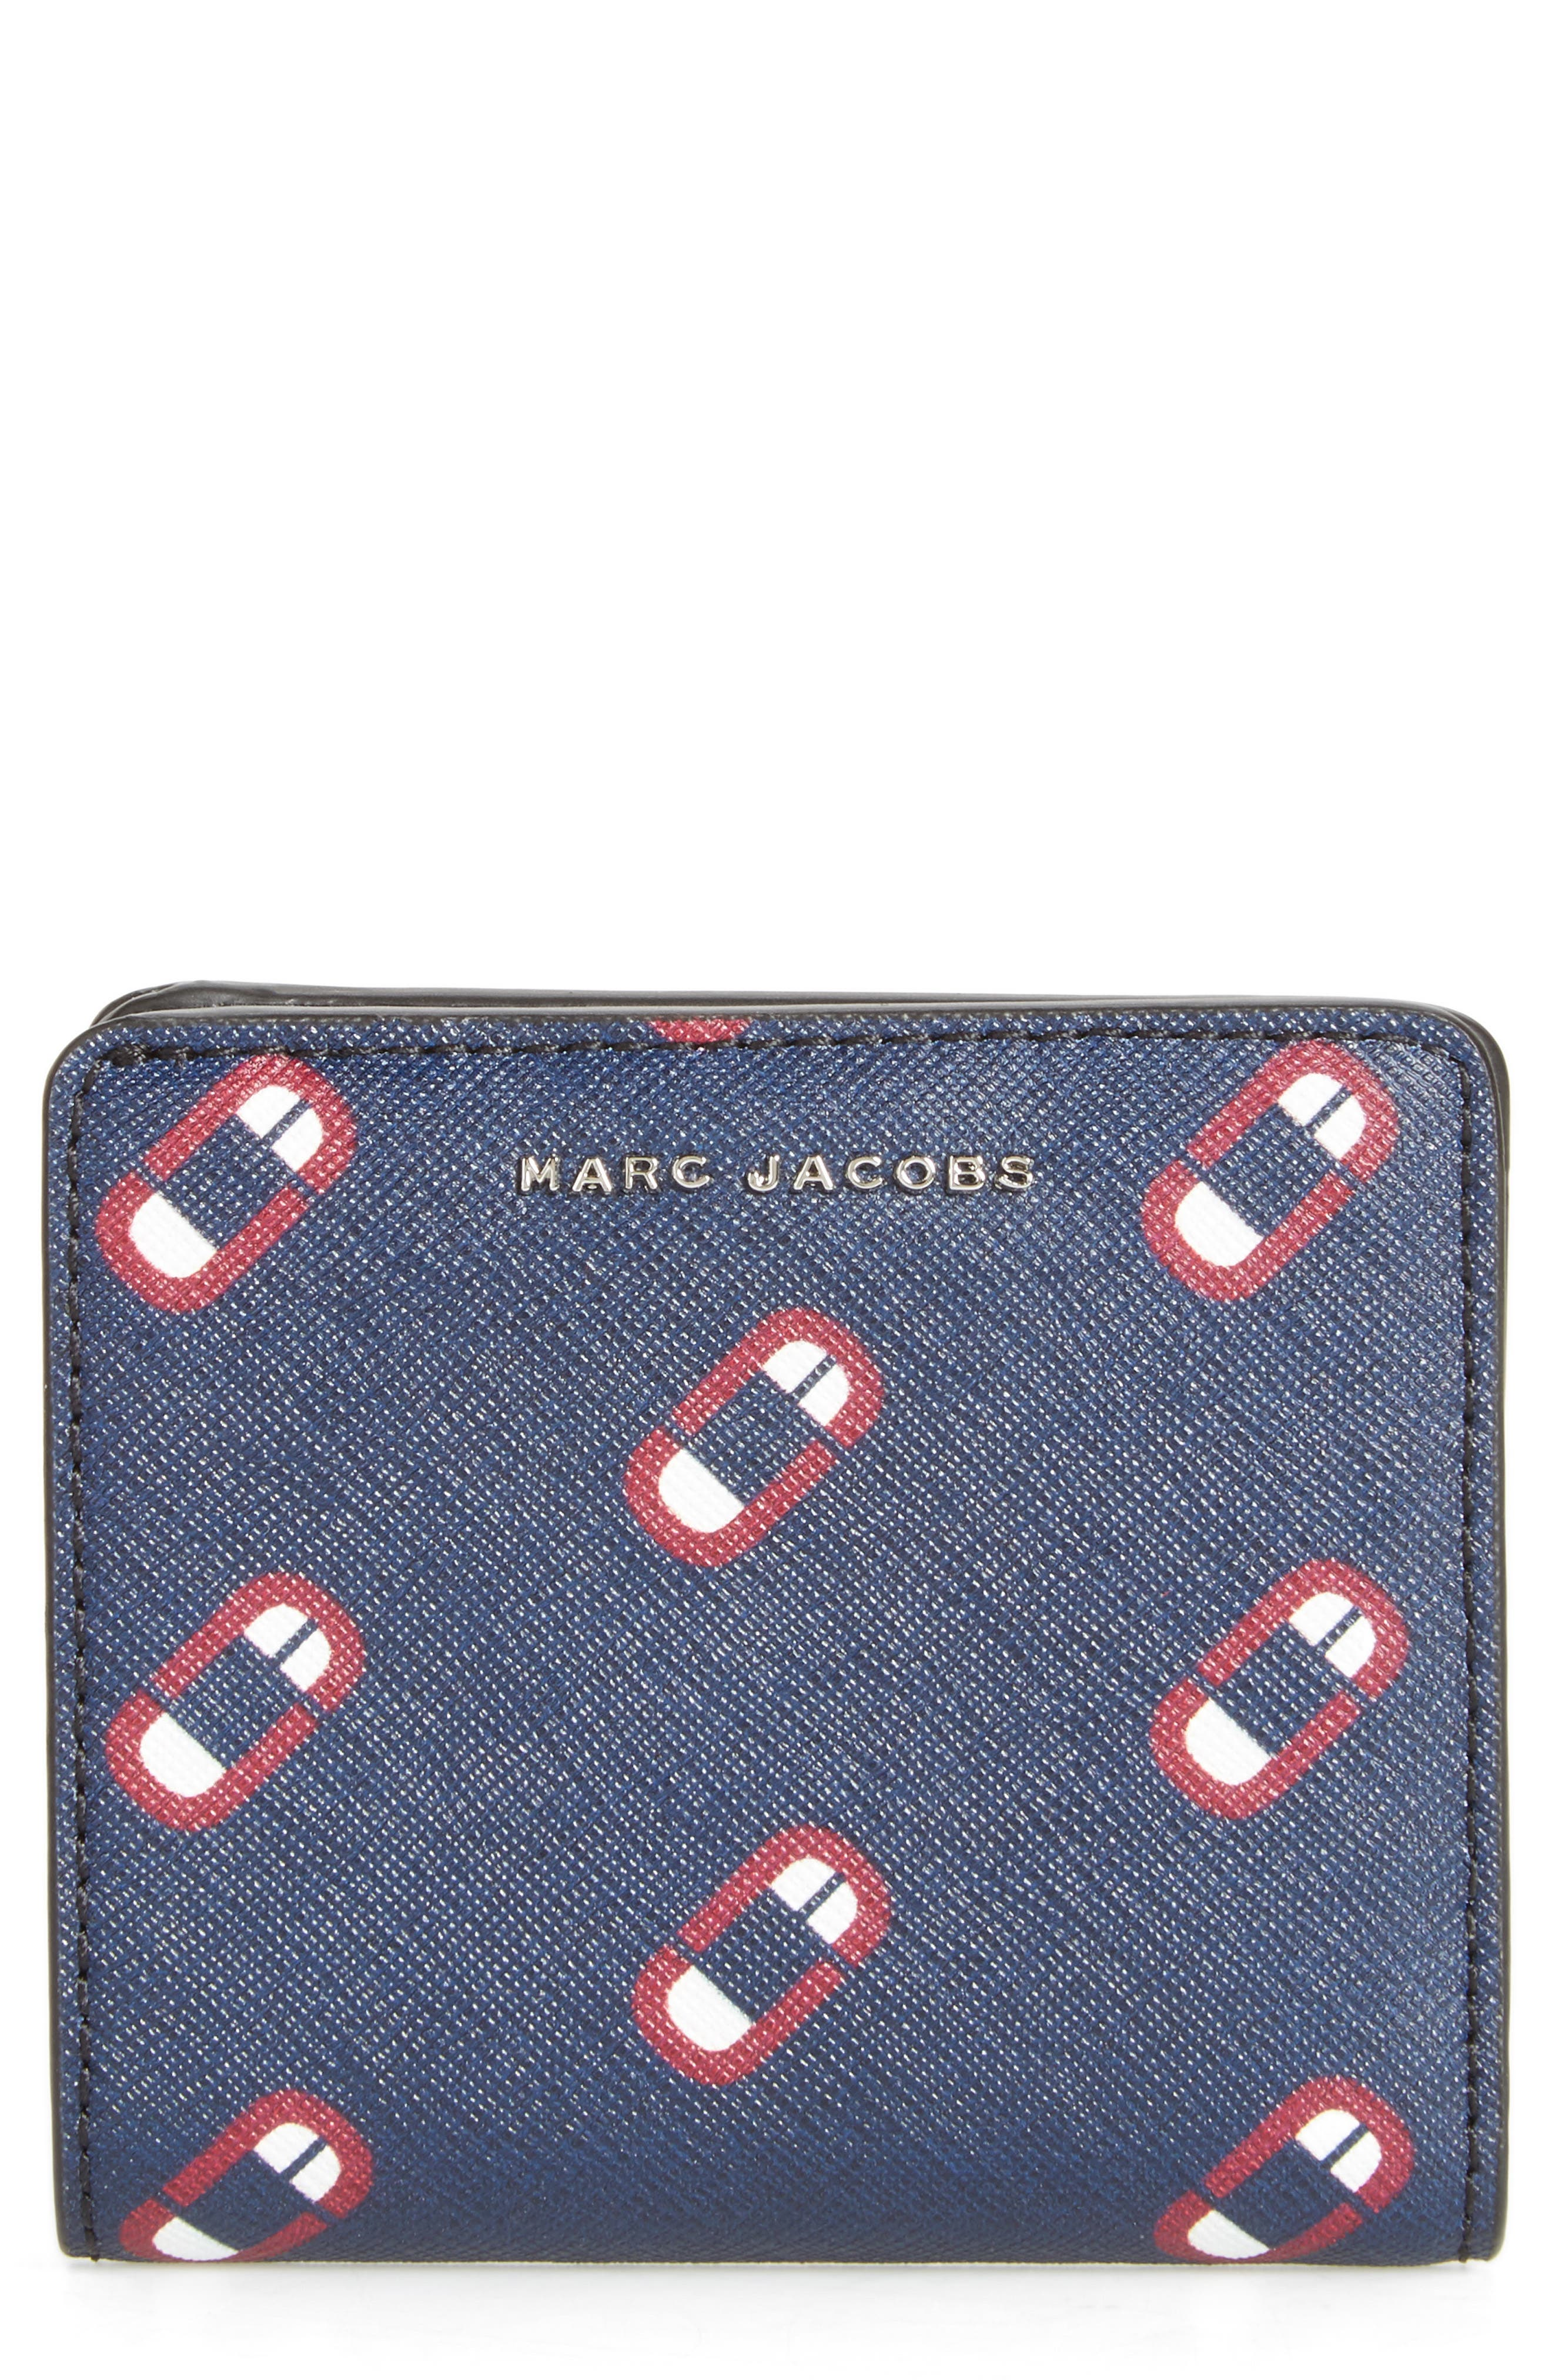 MARC JACOBS Scream Saffiano Leather Wallet